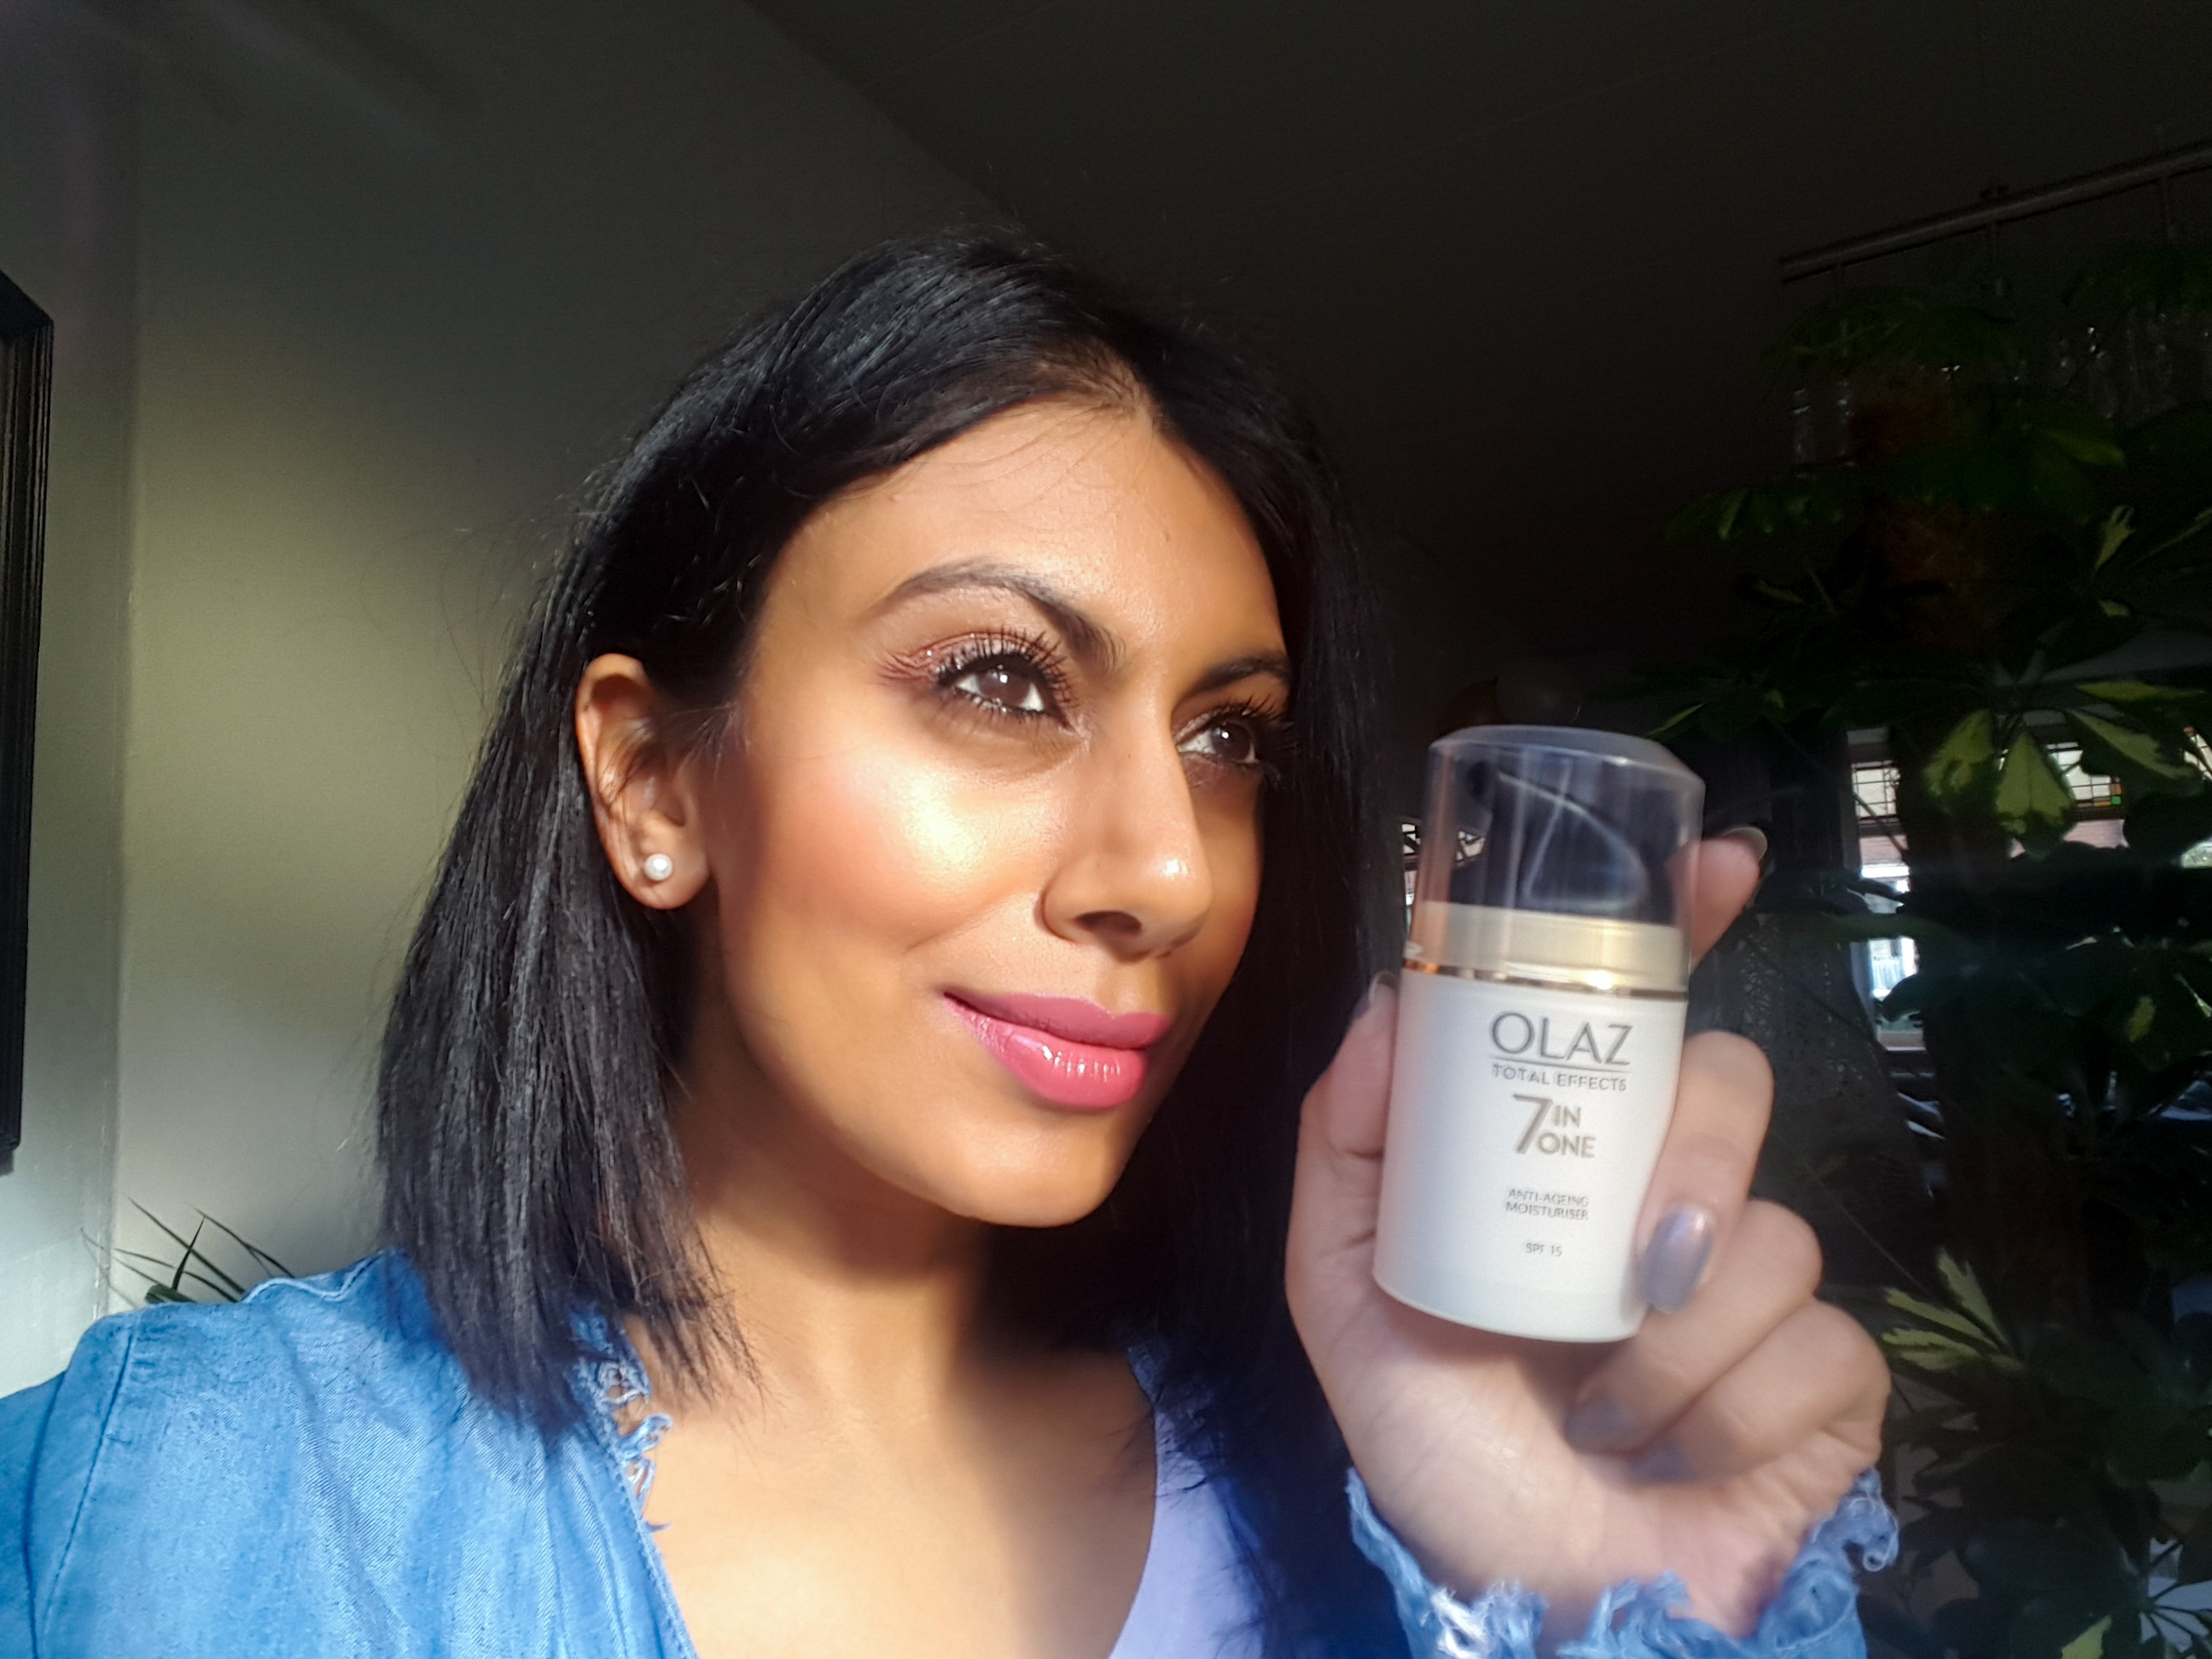 #MYSELFIE WITH OLAZ TOTAL EFFECTS 7-IN-1 DAYCREAM SPF 15